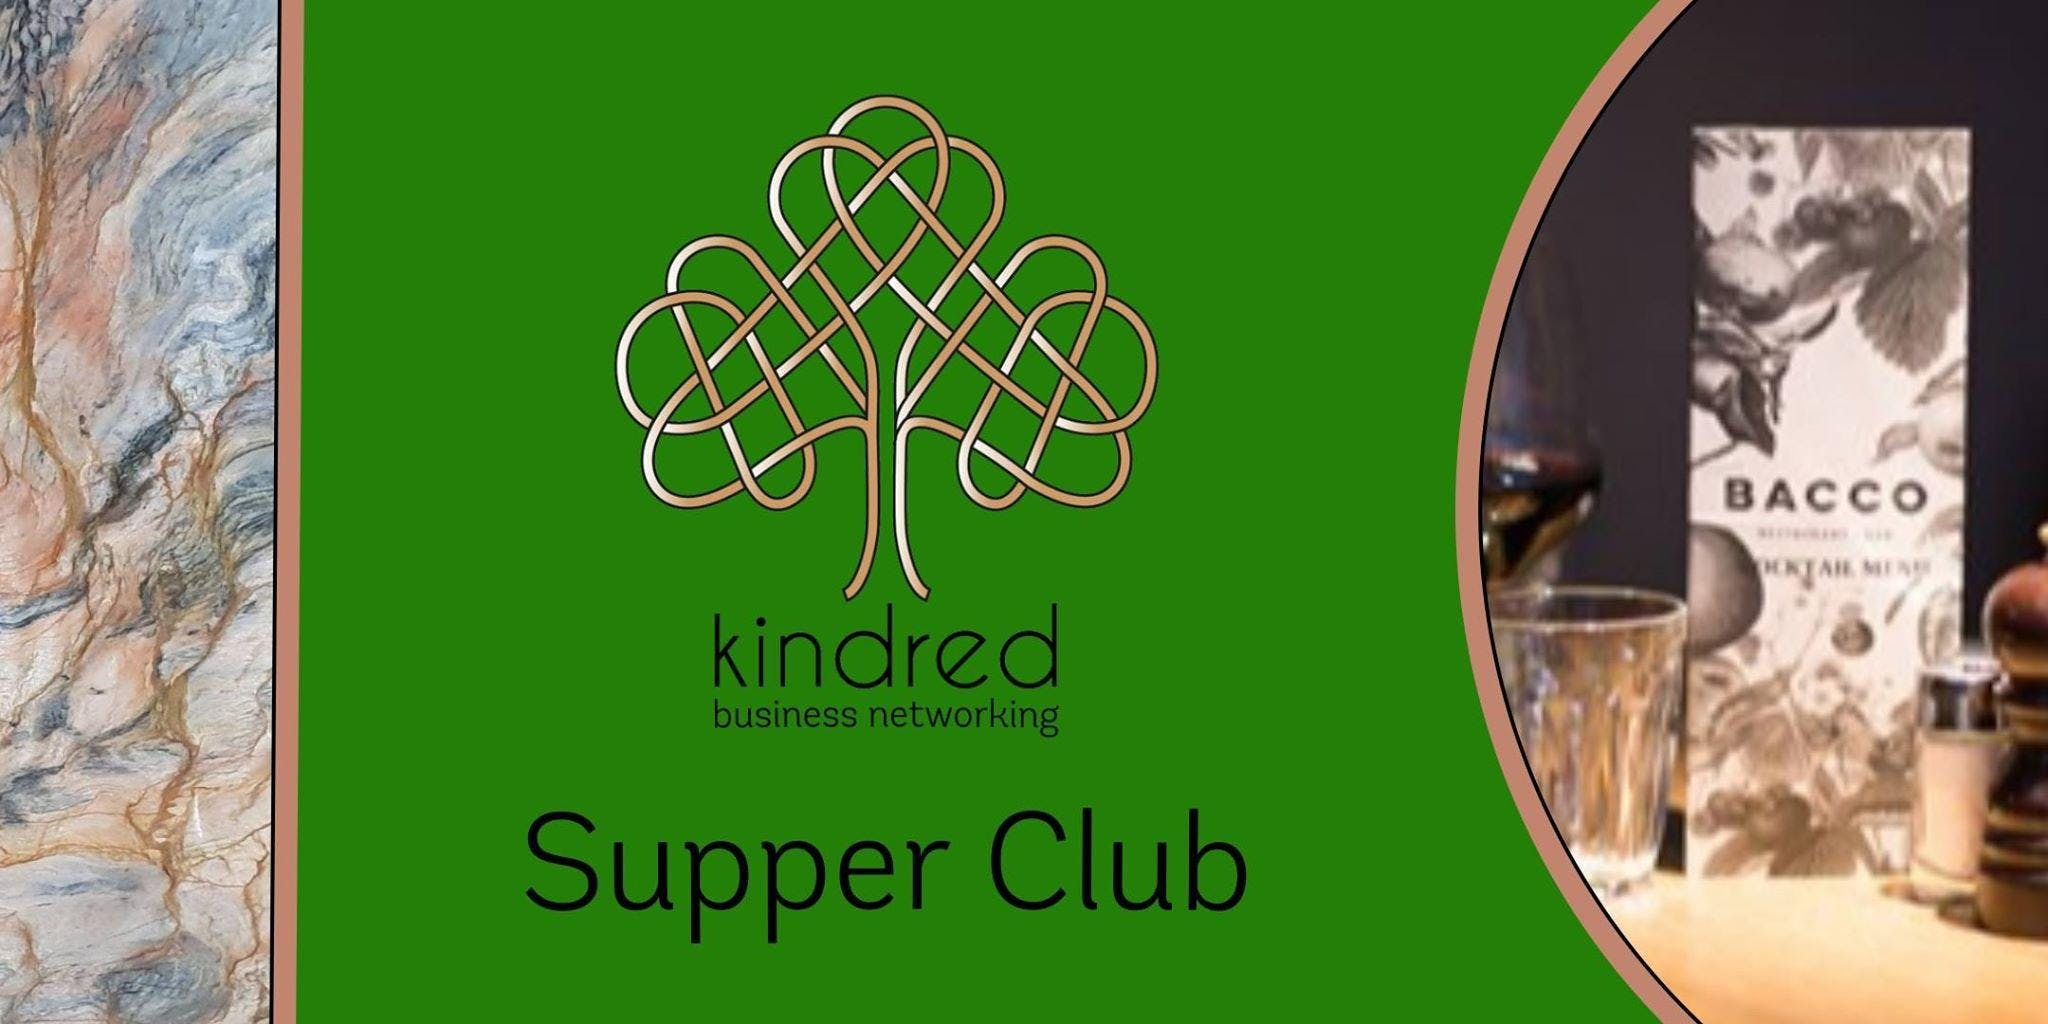 Kindred Business Networking - Supper Club